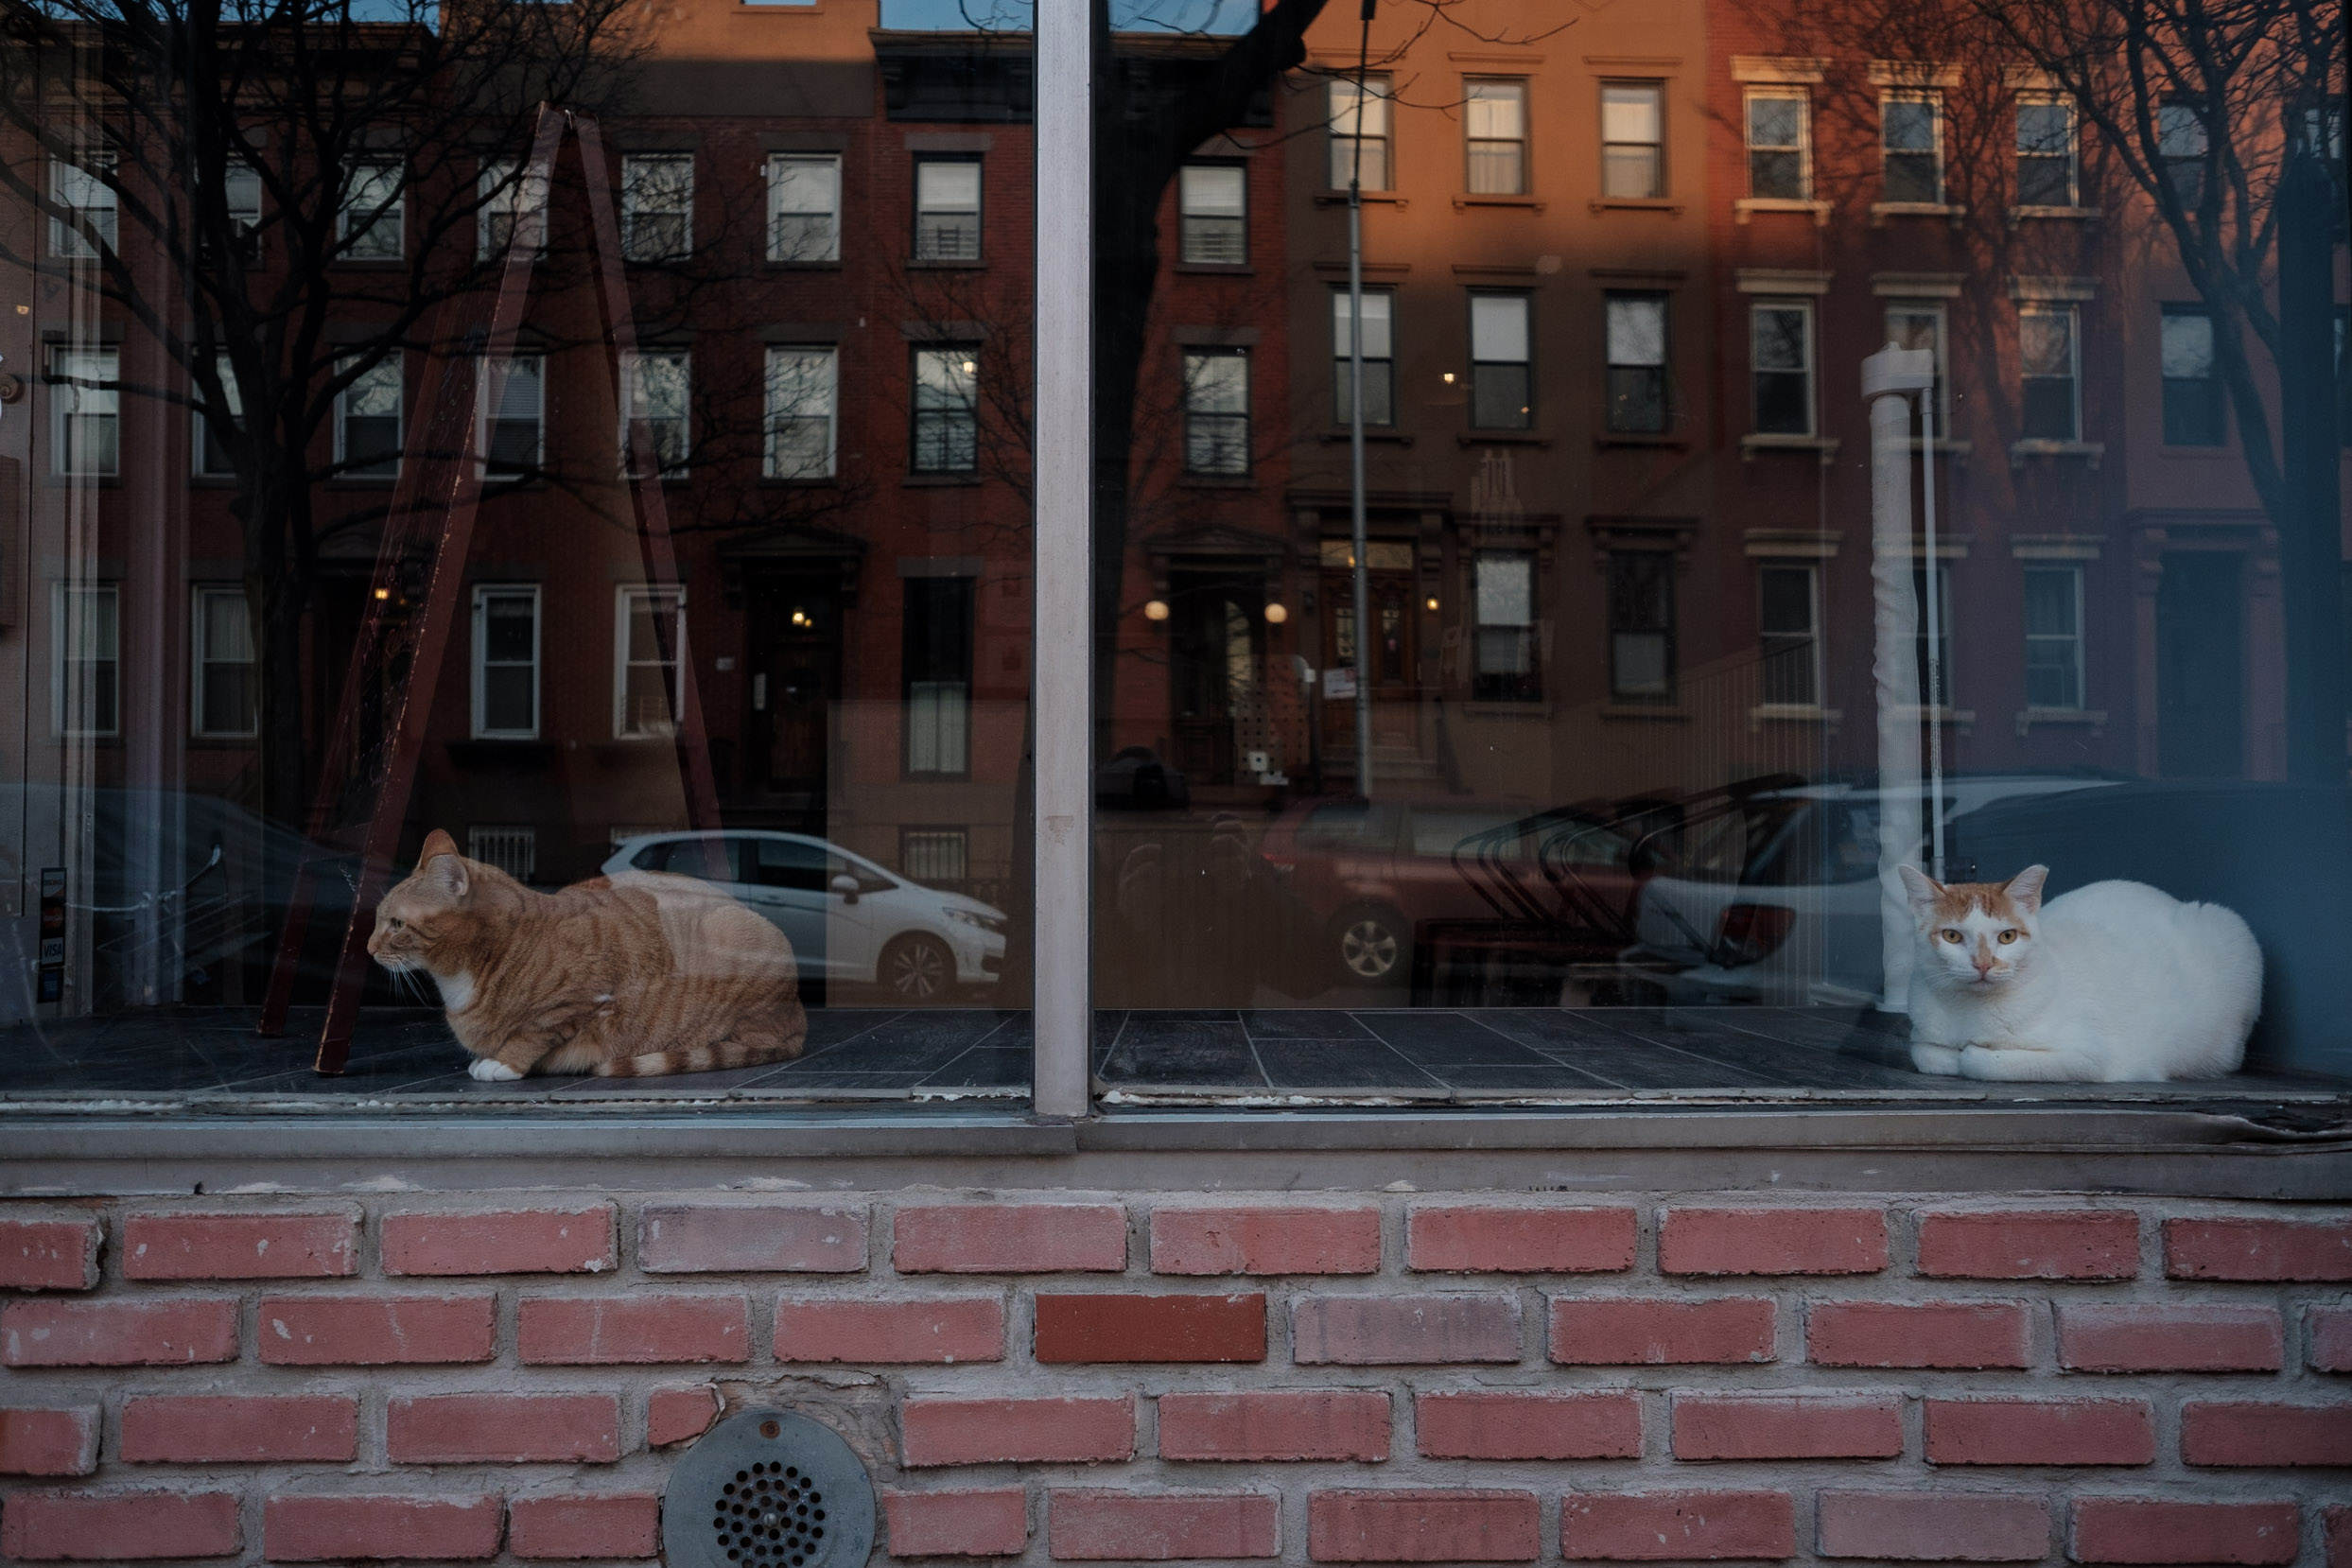 cats-in-storefront-carroll-gardens-brooklyn-color-photography